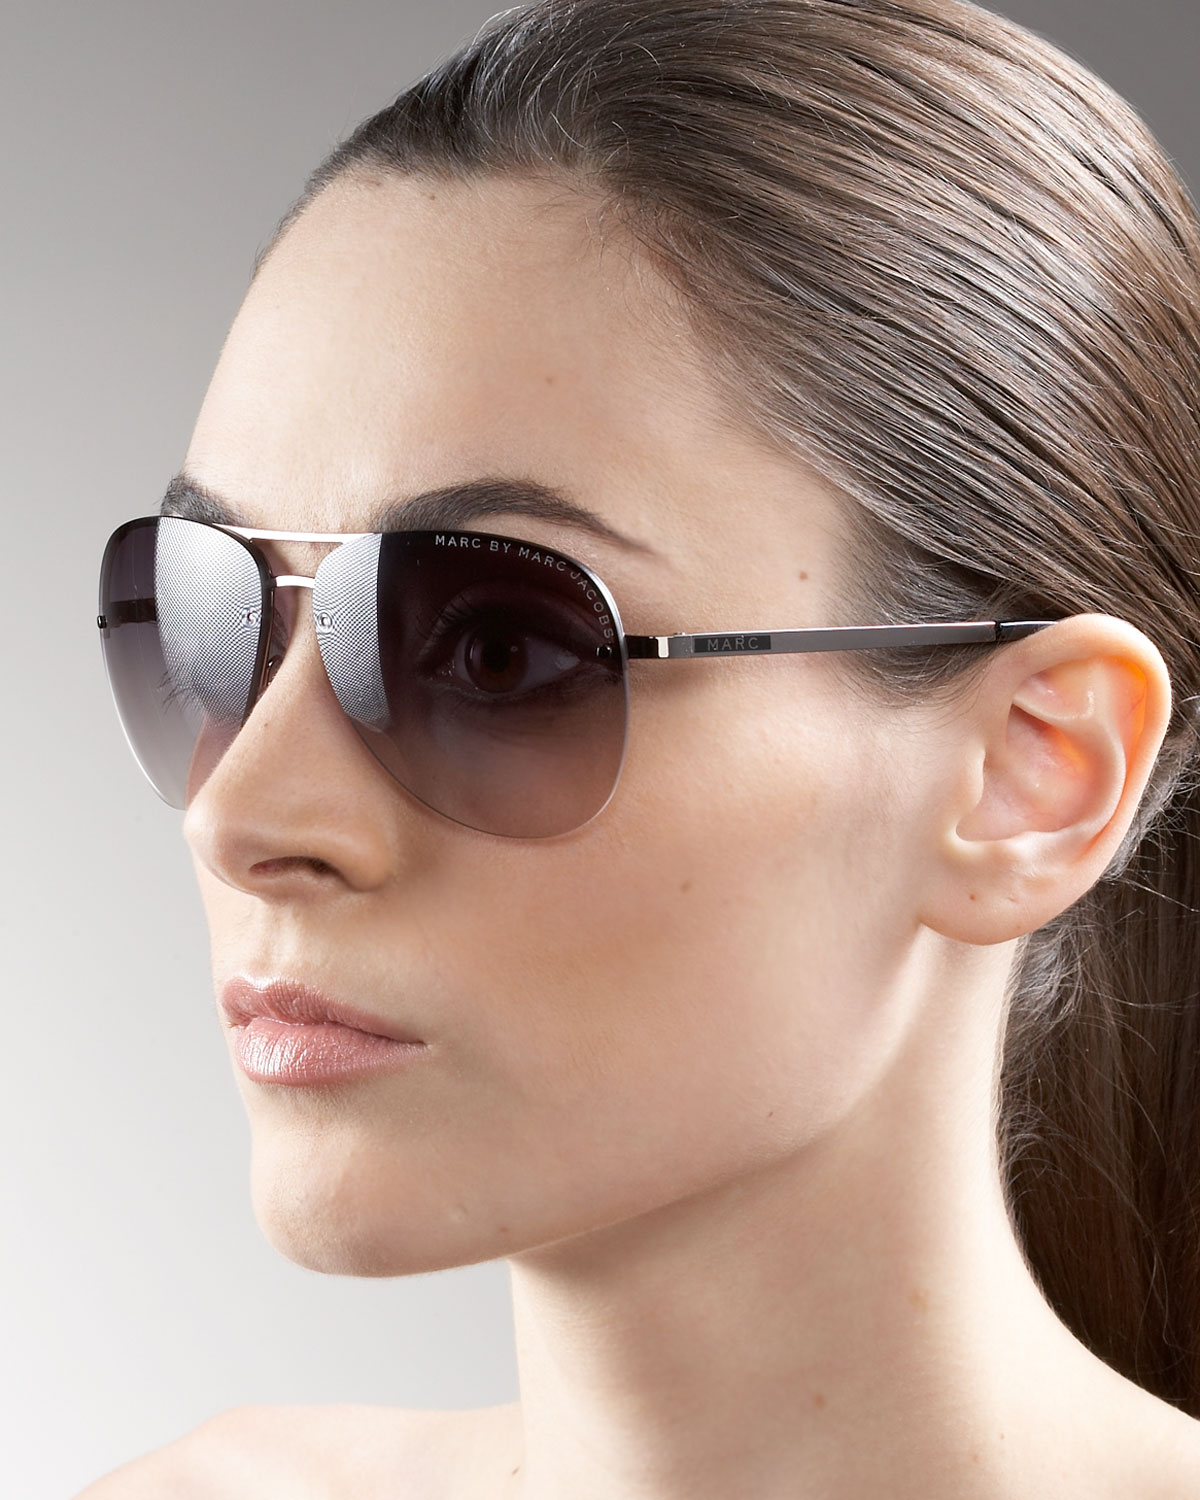 96a31f891dbe3 Marc By Marc Jacobs Rimless Aviator Sunglasses in Brown - Lyst